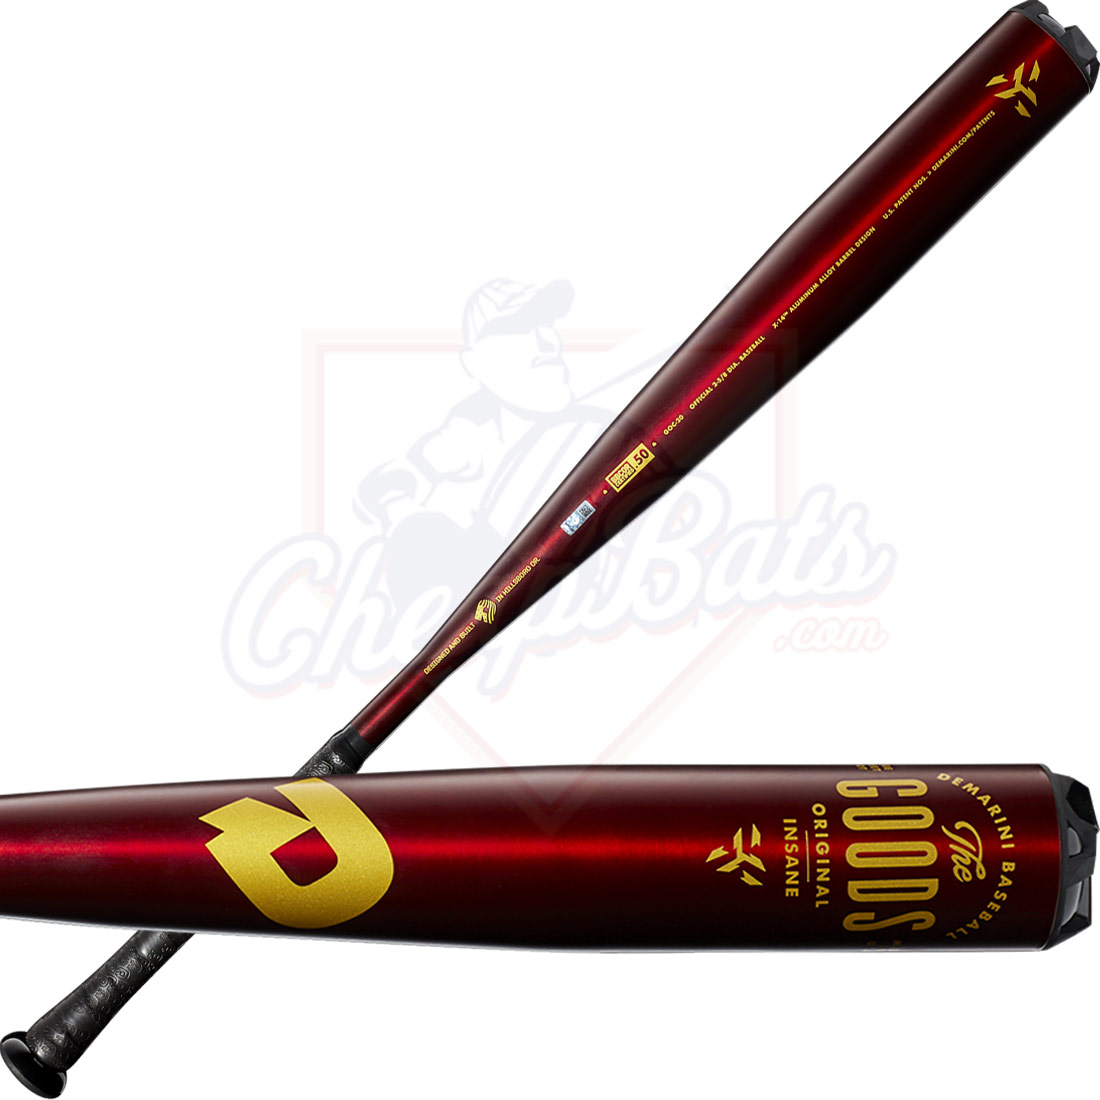 2020 DeMarini The Goods One Piece BBCOR Baseball Bat -3oz WTDXGOC-20